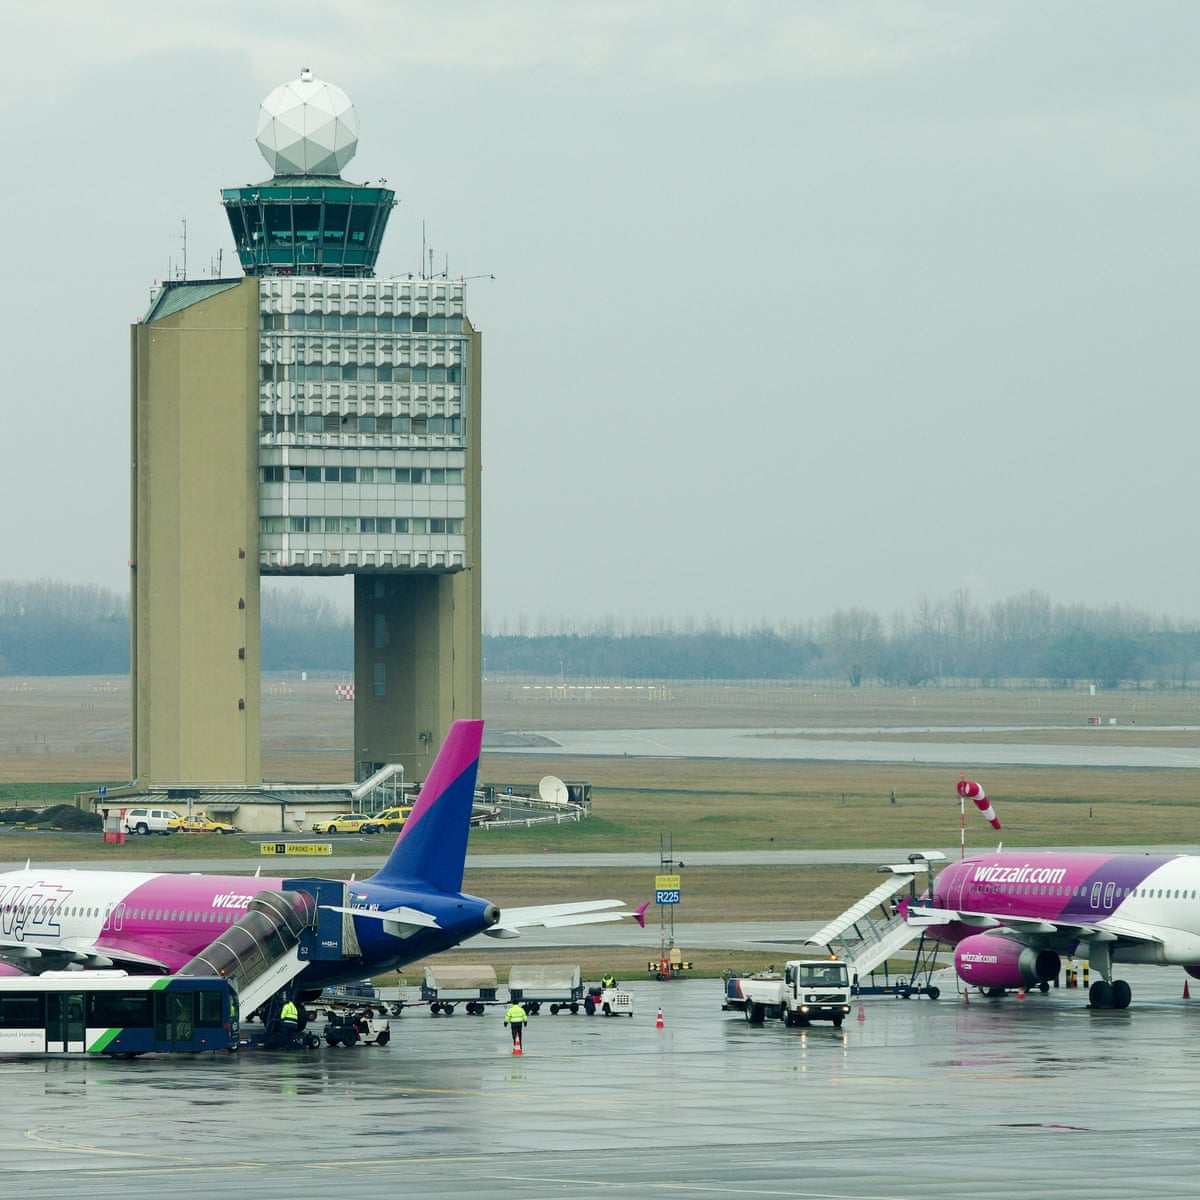 Wizz Air Cancelled My Flight But A Refund Is Not On The Cards Consumer Affairs The Guardian